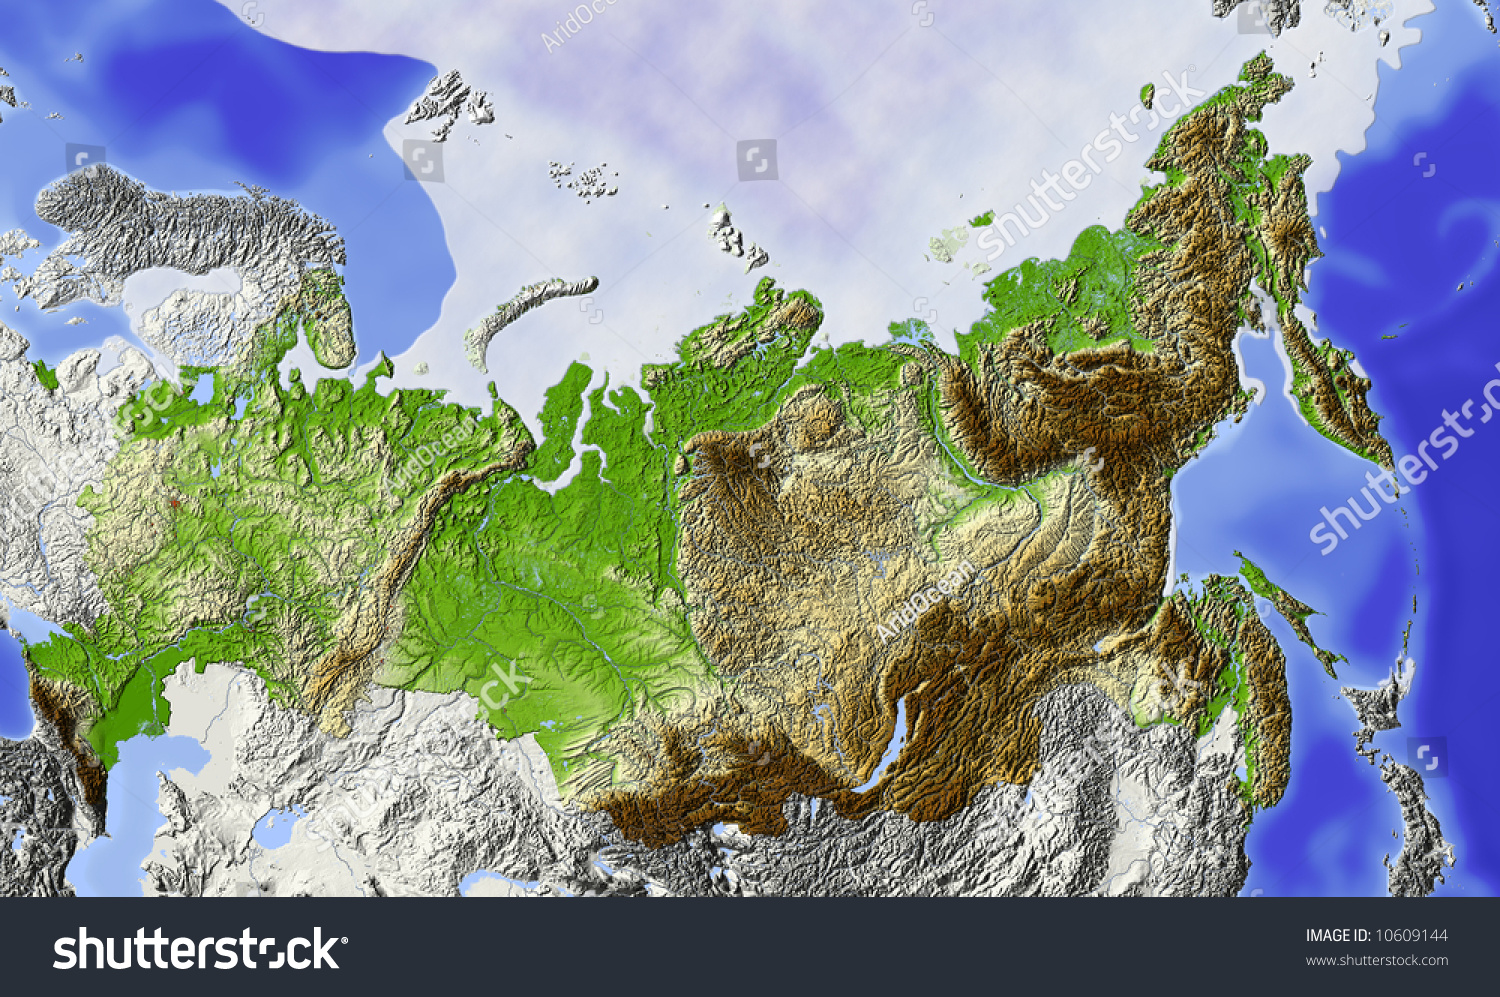 Russia Shaded Relief Map Of Russian Federation With Rivers Major Urban Areas And Polar Ice